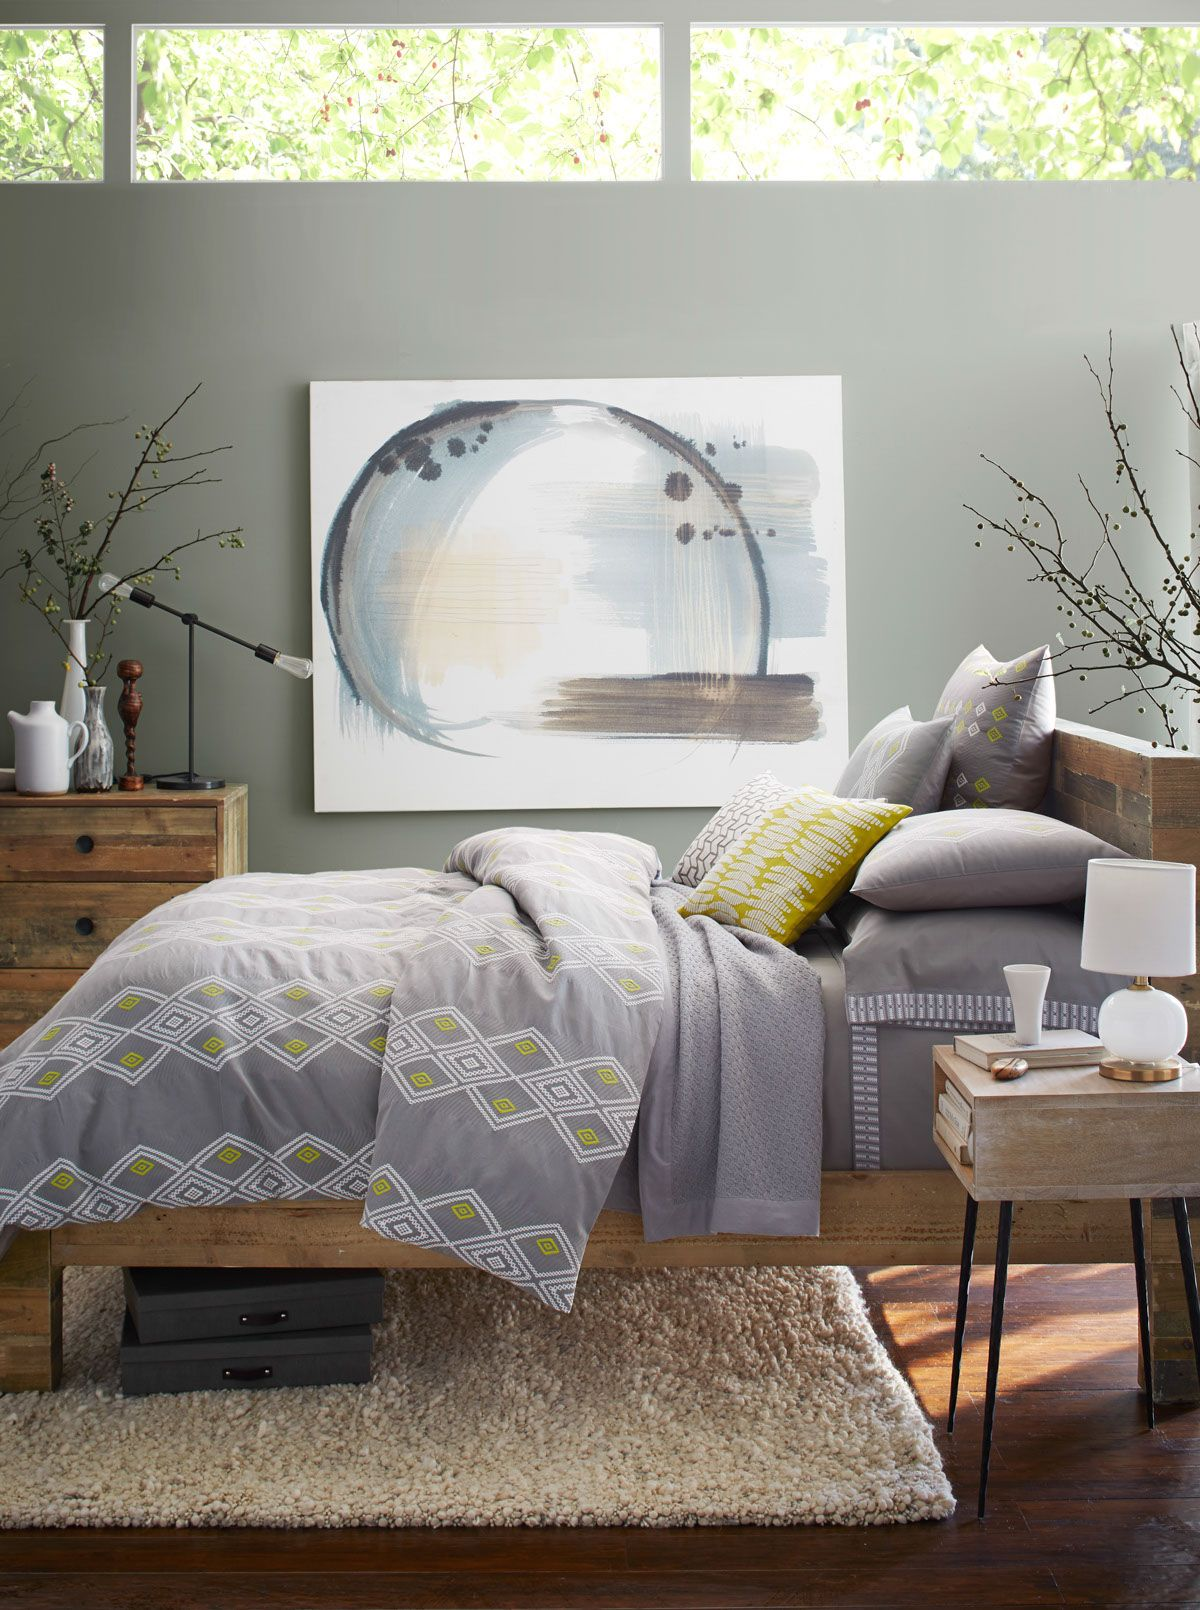 The Coyuchi West Elm Bedding Is Made From 100 Organic Cotton And Beautifully Complements S Emmerson Bedroom Furniture Reclaimed Wood